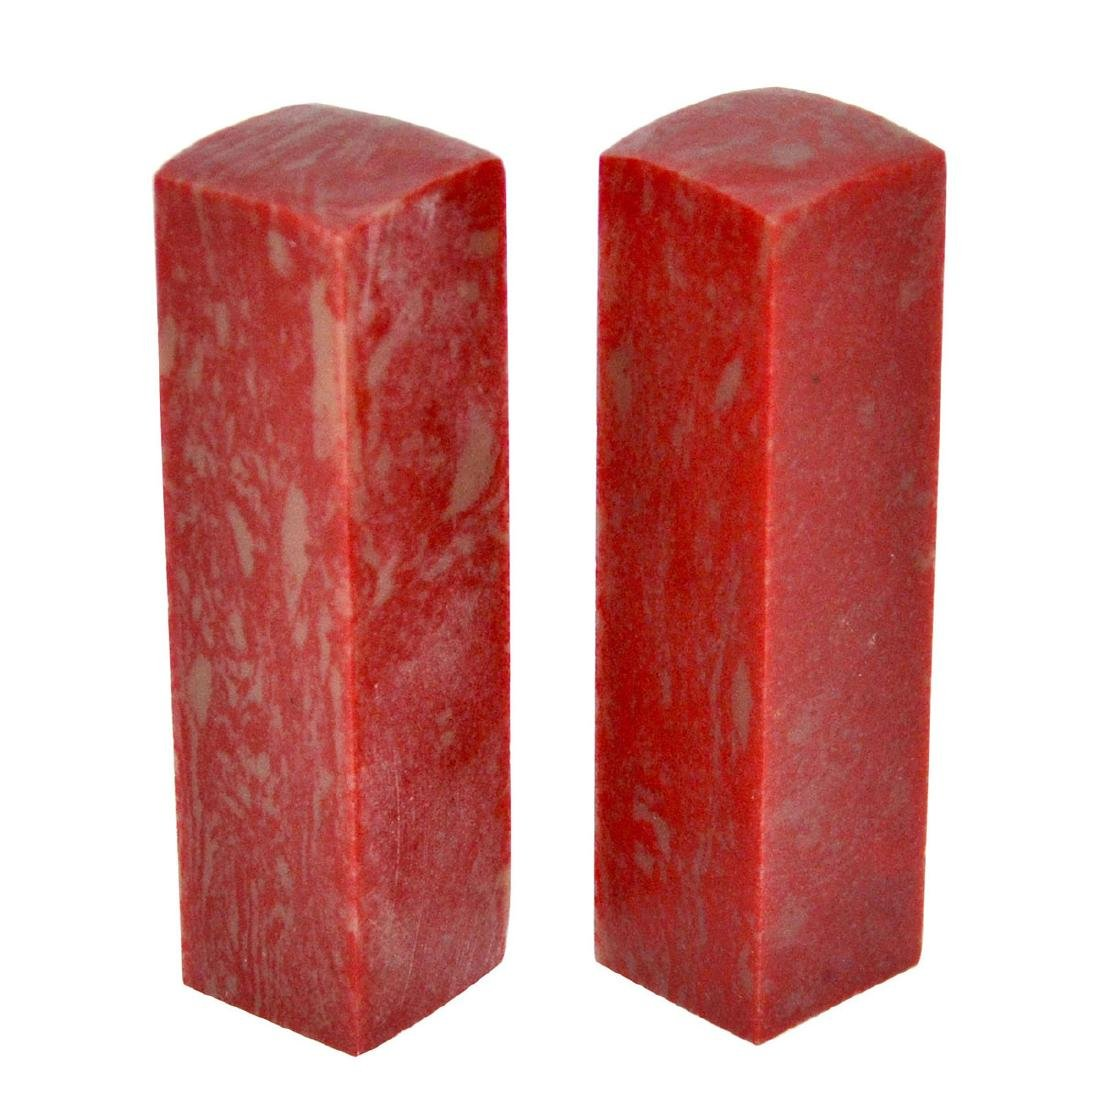 A Pair of Columnar Ji Xue Stone Seals